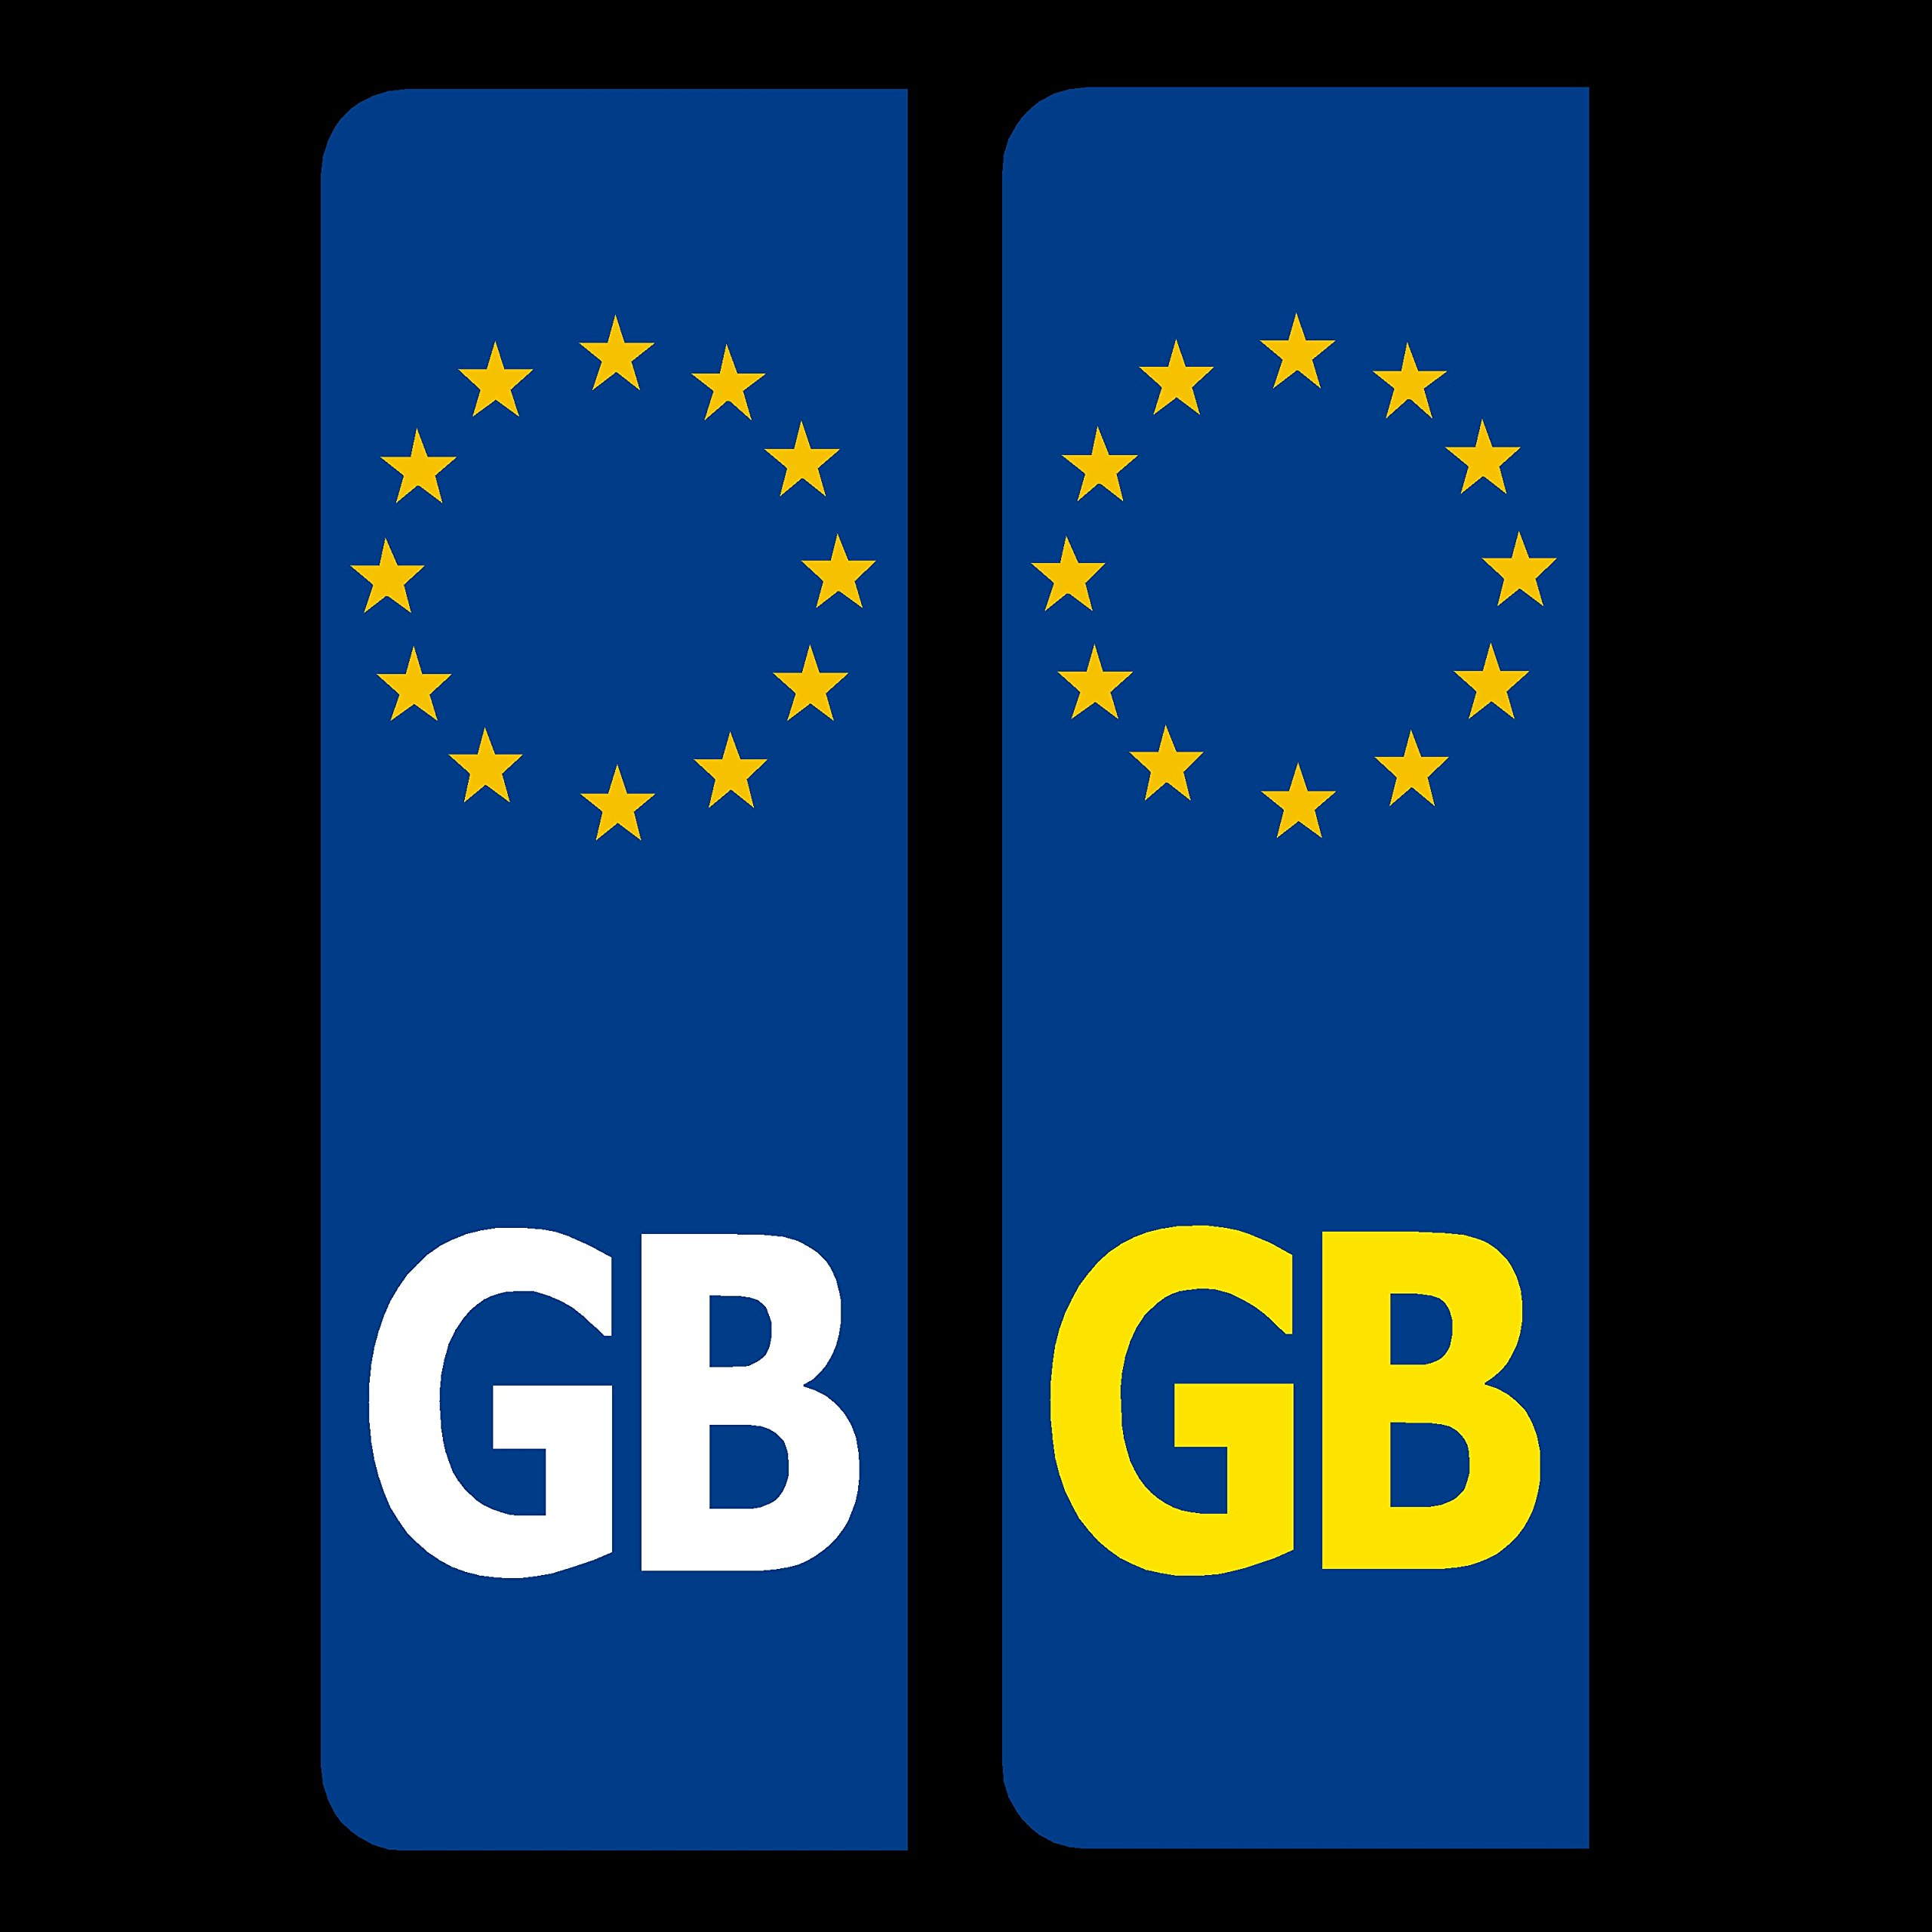 Road Legal GB United Kingdom Symbol Car REFLECTIVE Vinyl Sticker Number Plate Decal for European Roads after BREXIT GB EU flag stickers